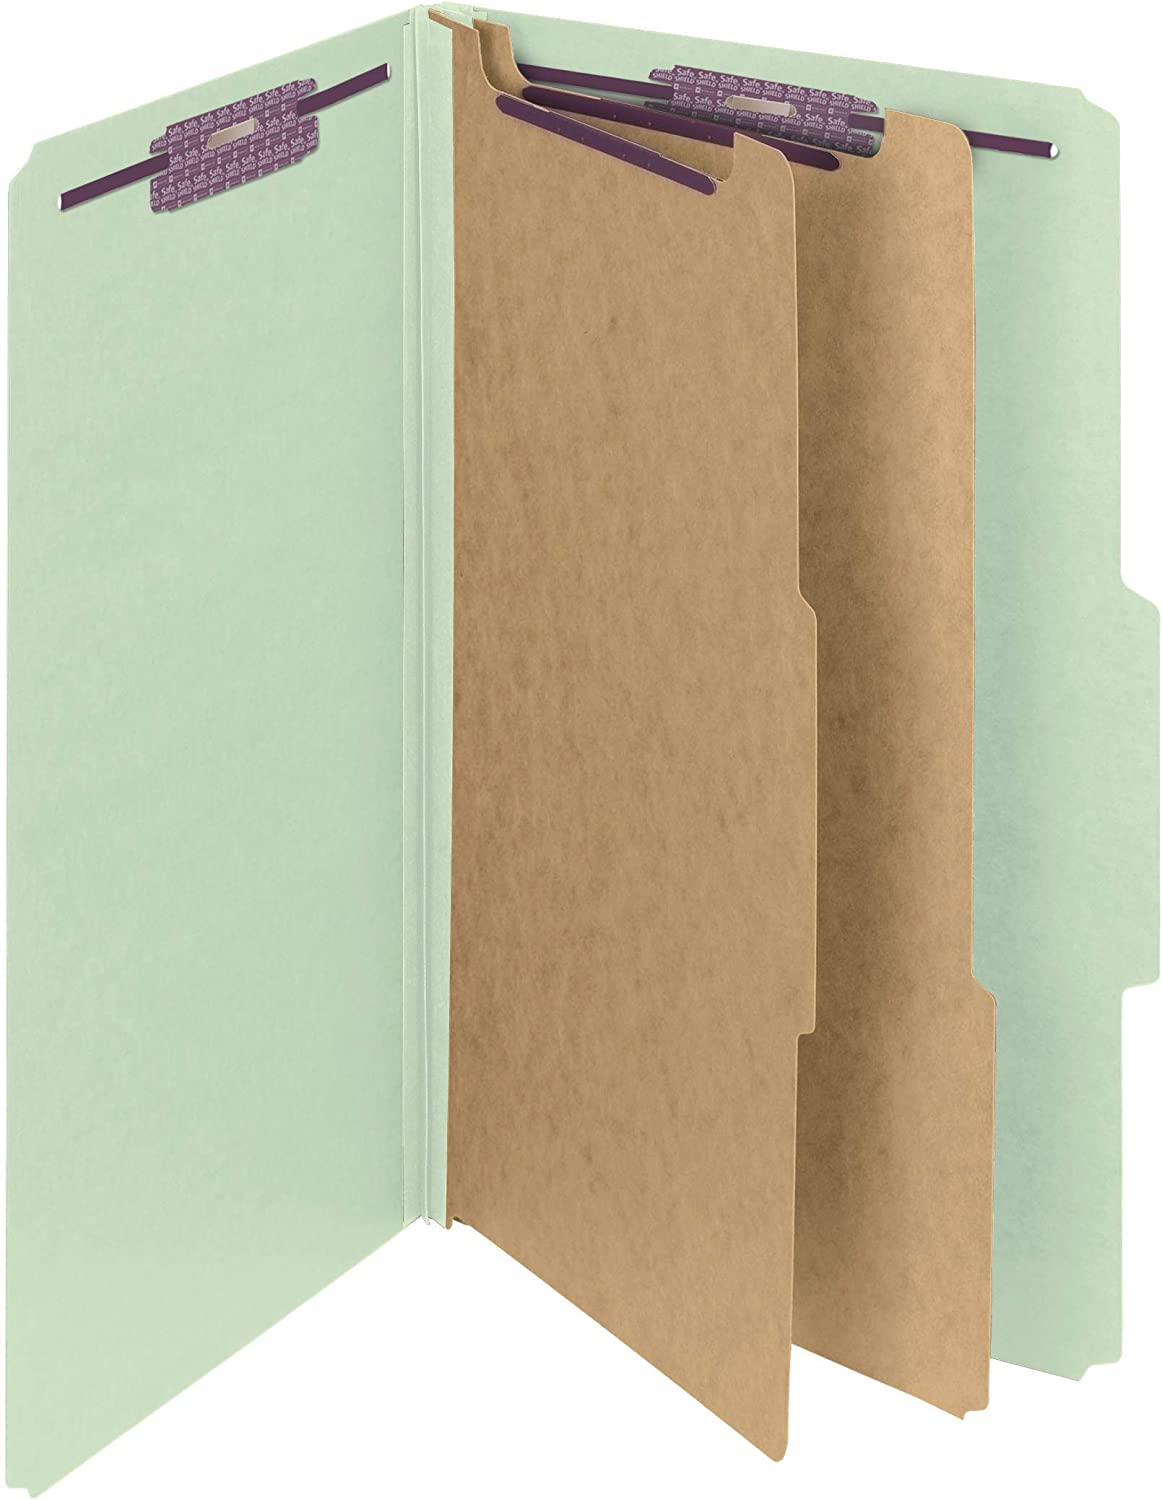 Smead PressGuard Classification File Folder with SafeSHIELD Fasteners 2 Expansion 14206 Gray//Green 10 per Box Letter Size 2 Dividers